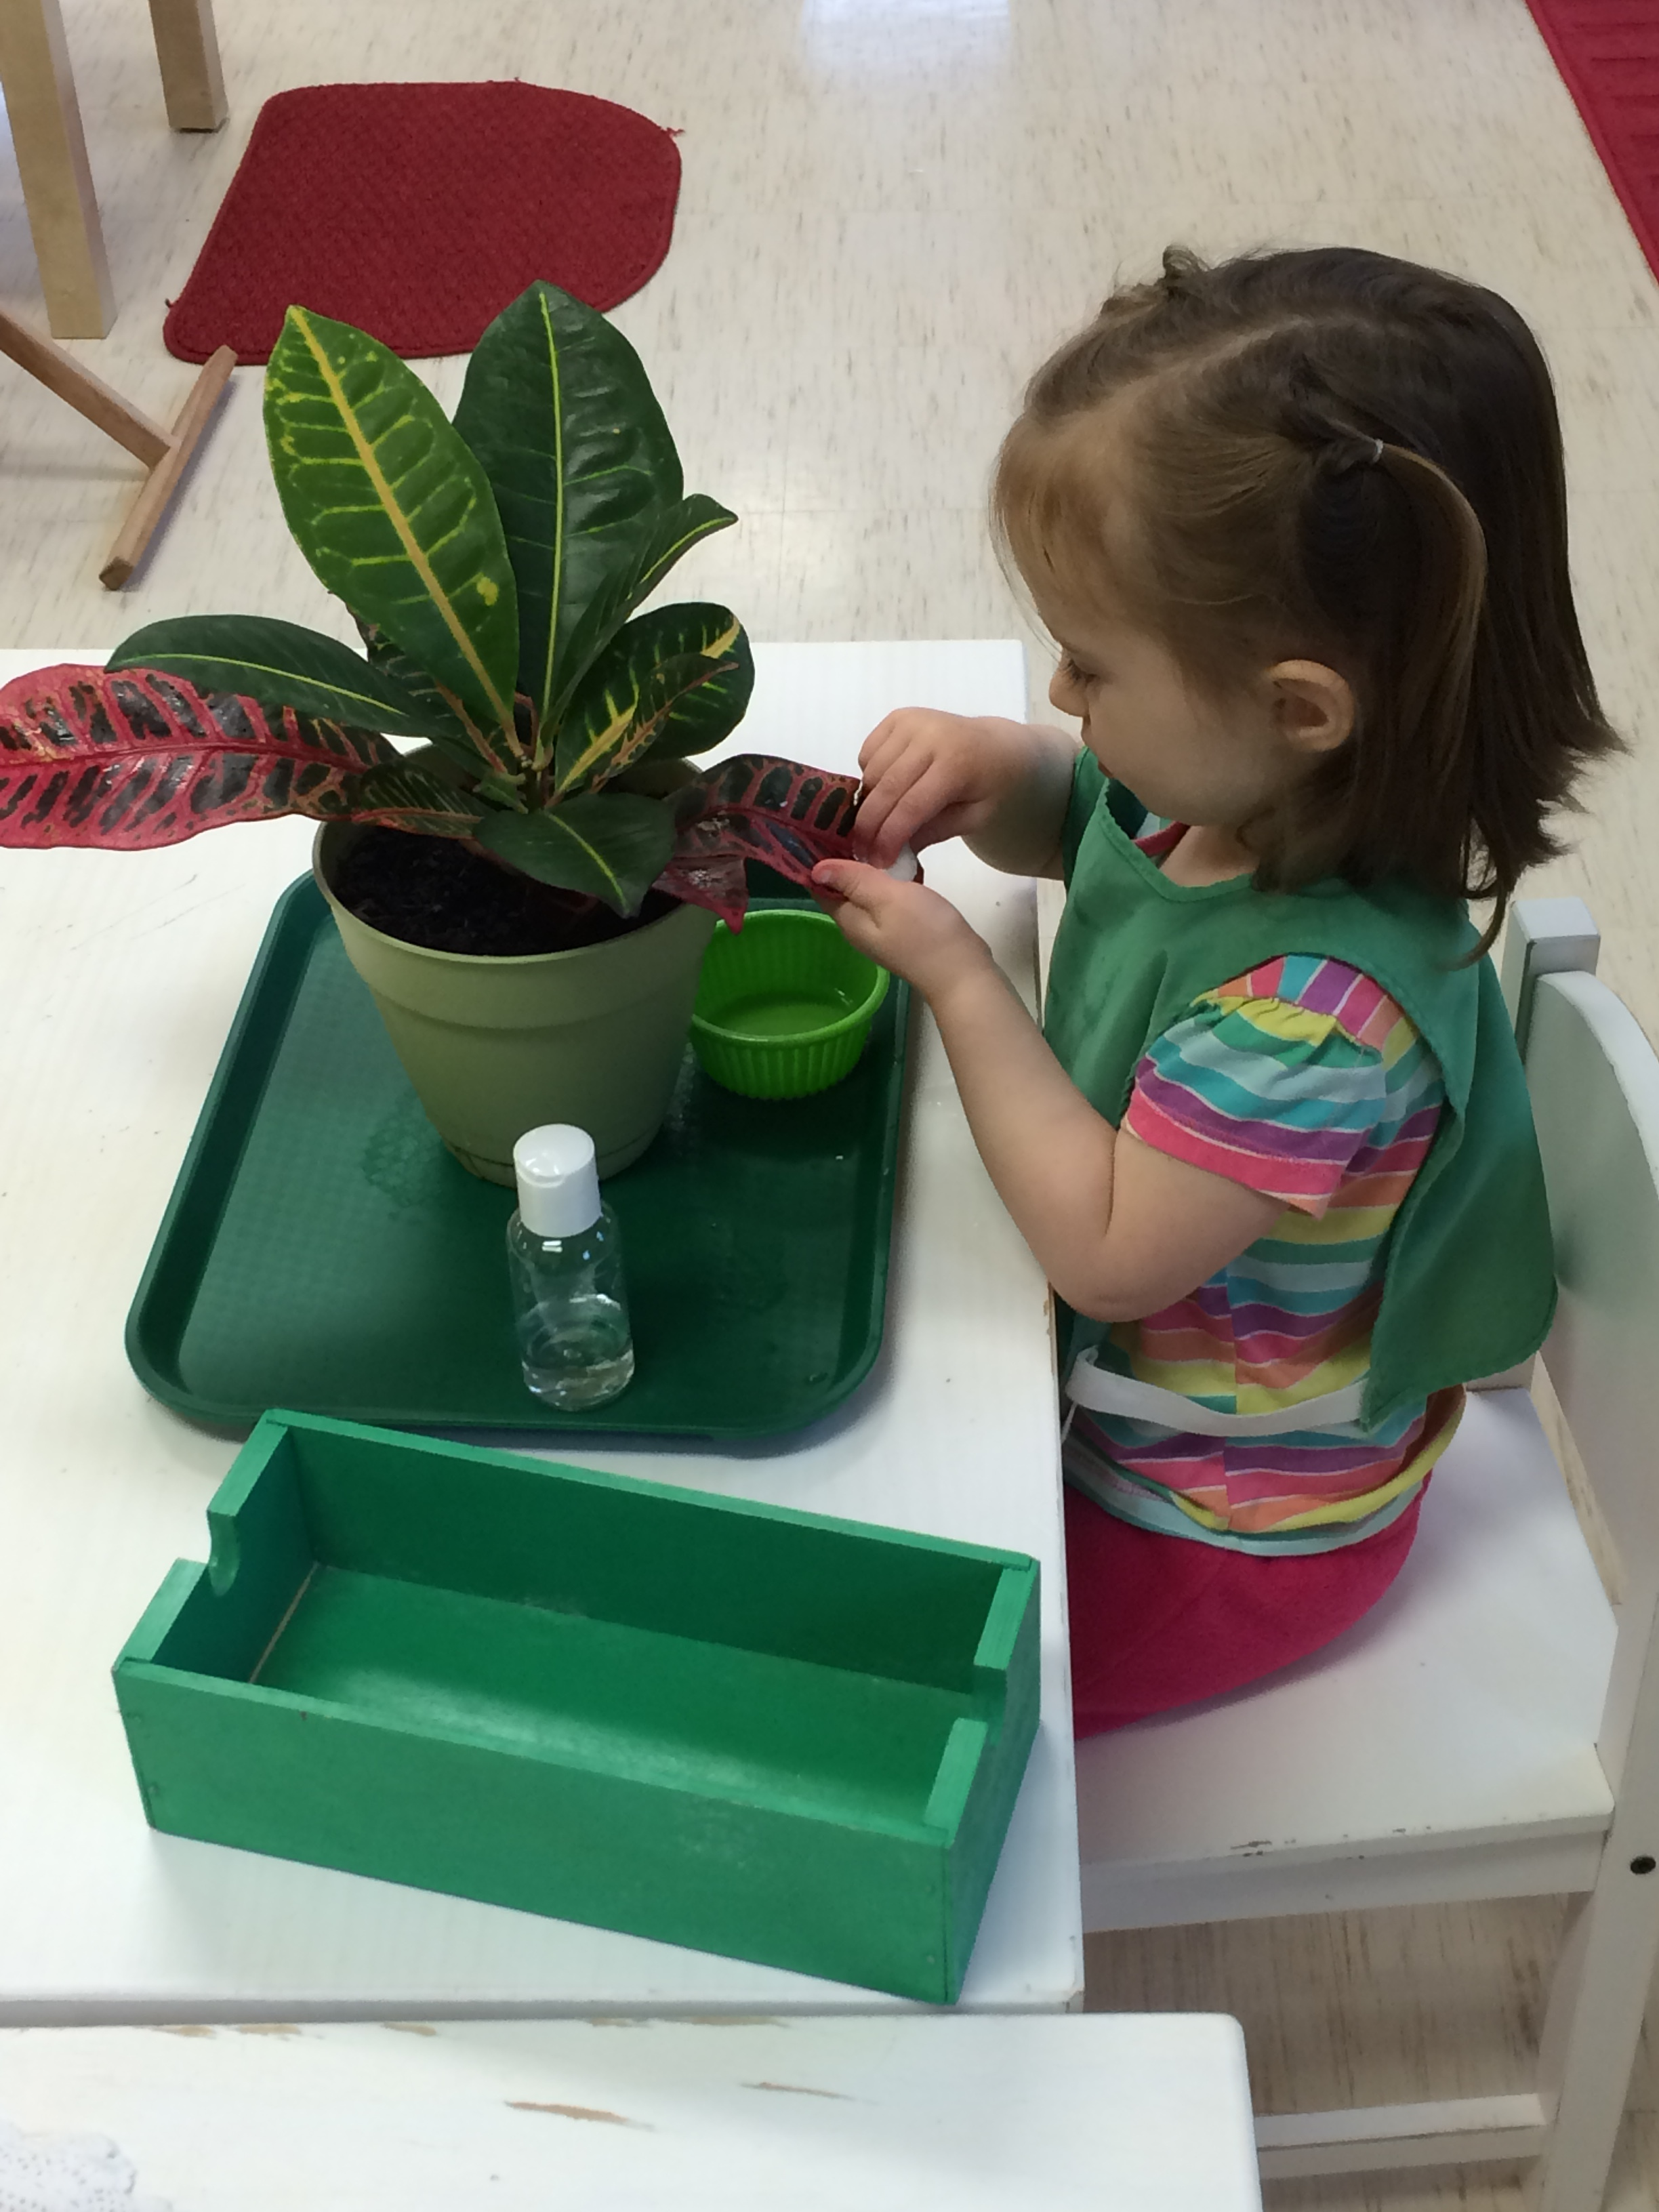 Plant washing is a practical life skill that gives the child the opportunity to care for the world around them while building concentration.